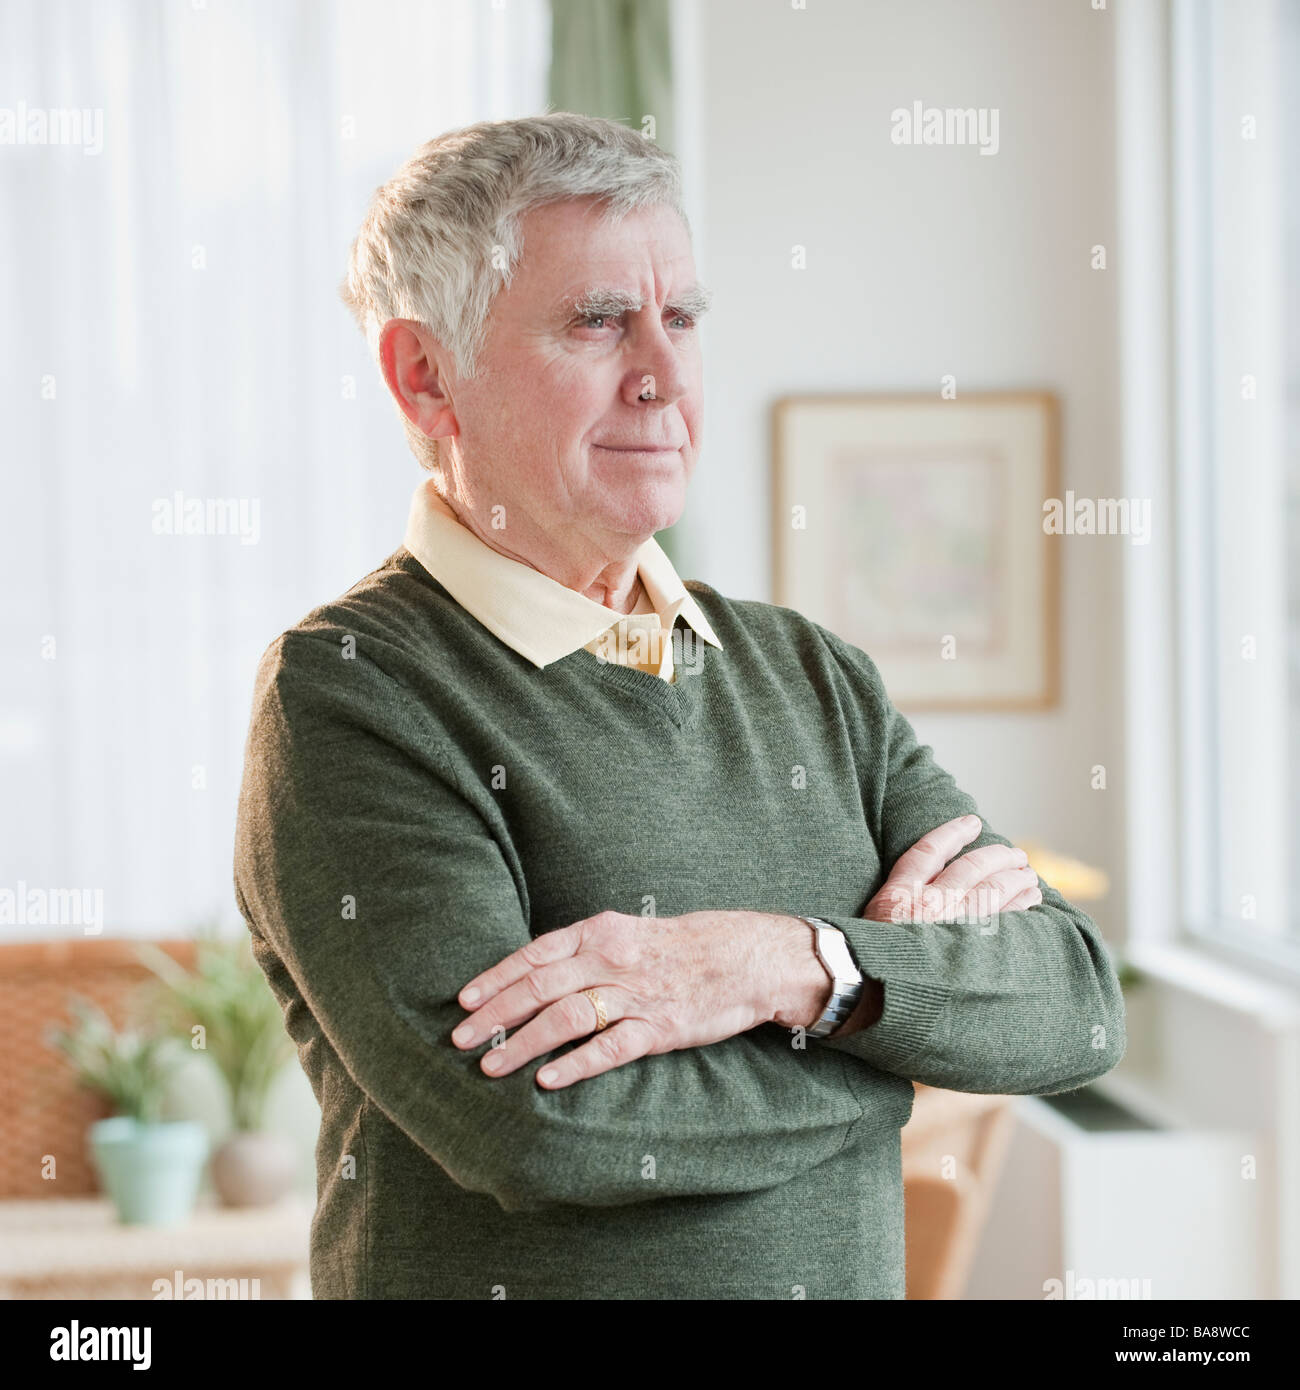 Senior man with arms crossed - Stock Image